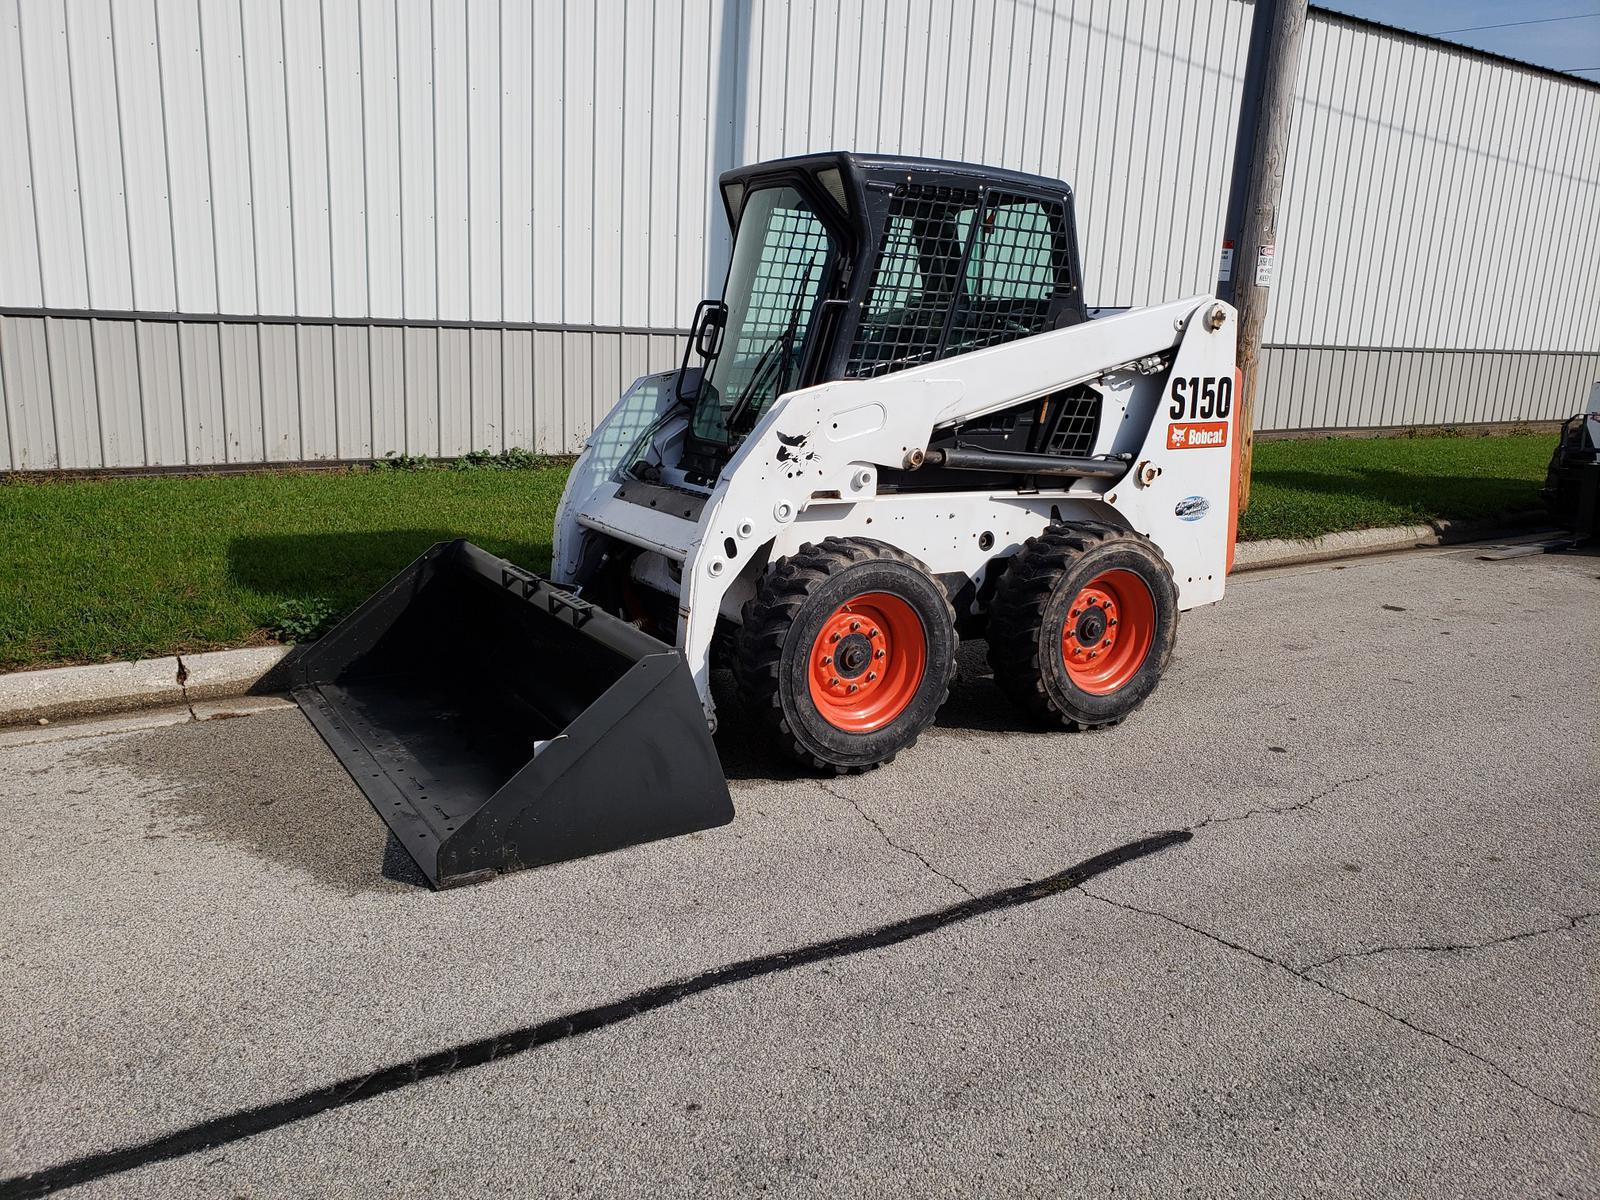 Inventory from Bobcat and McCormick Luxemburg Implement Co